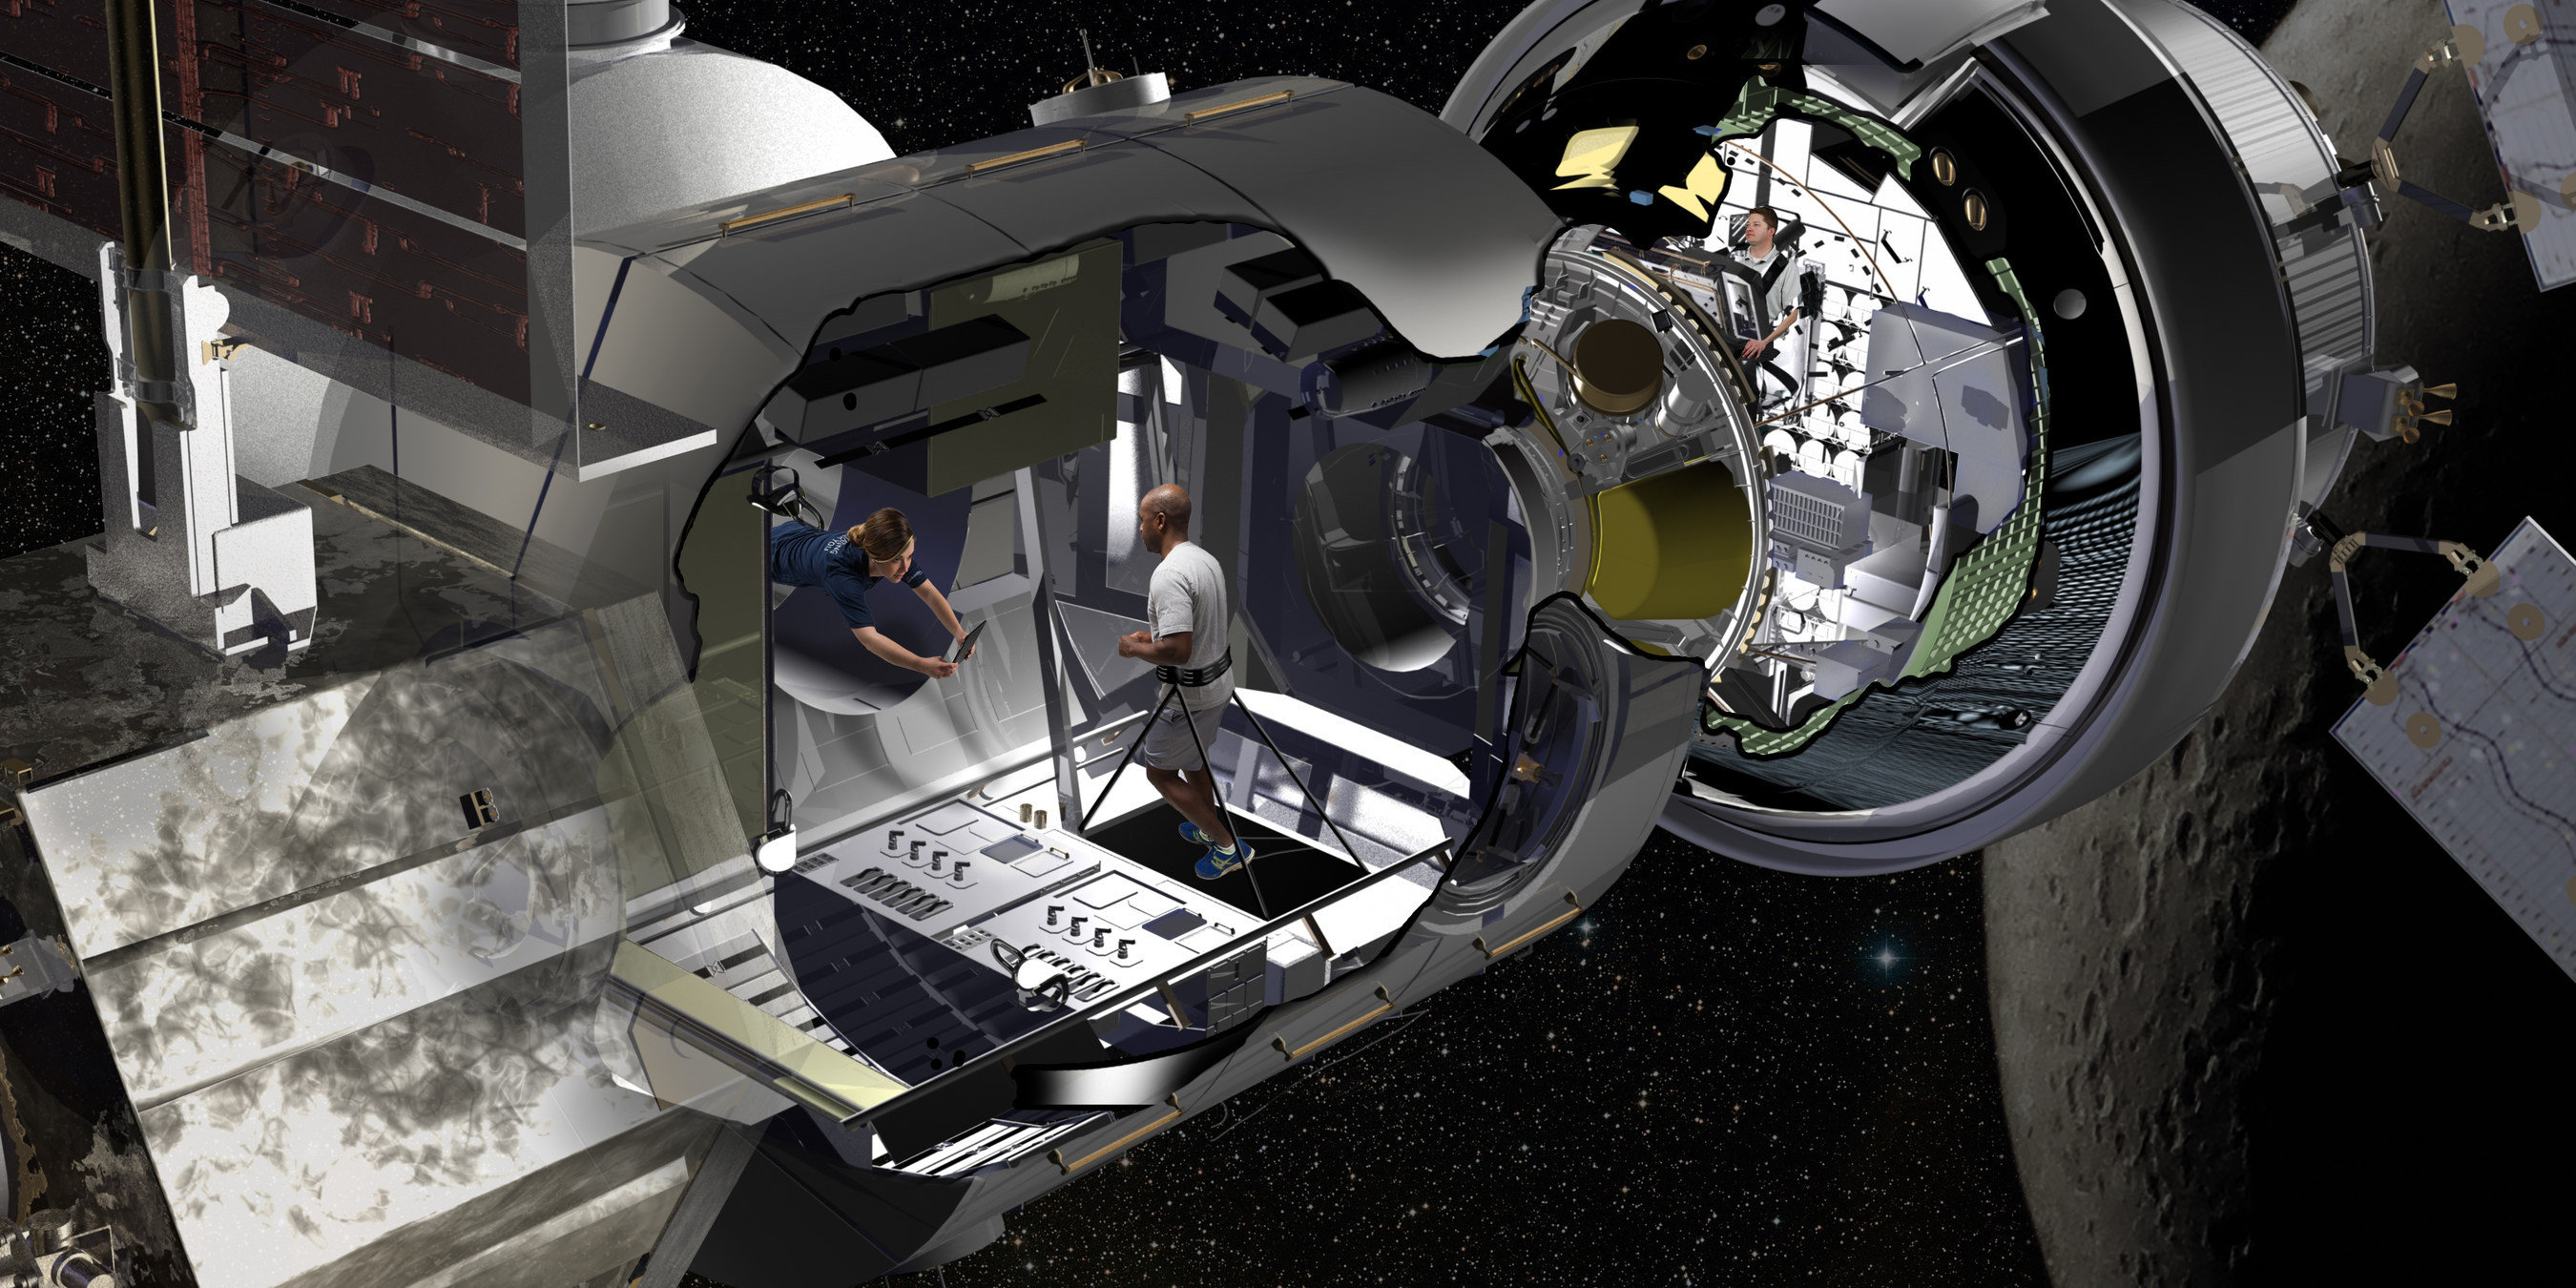 Lockheed Martin showed where the astronauts will live during missions into deep space